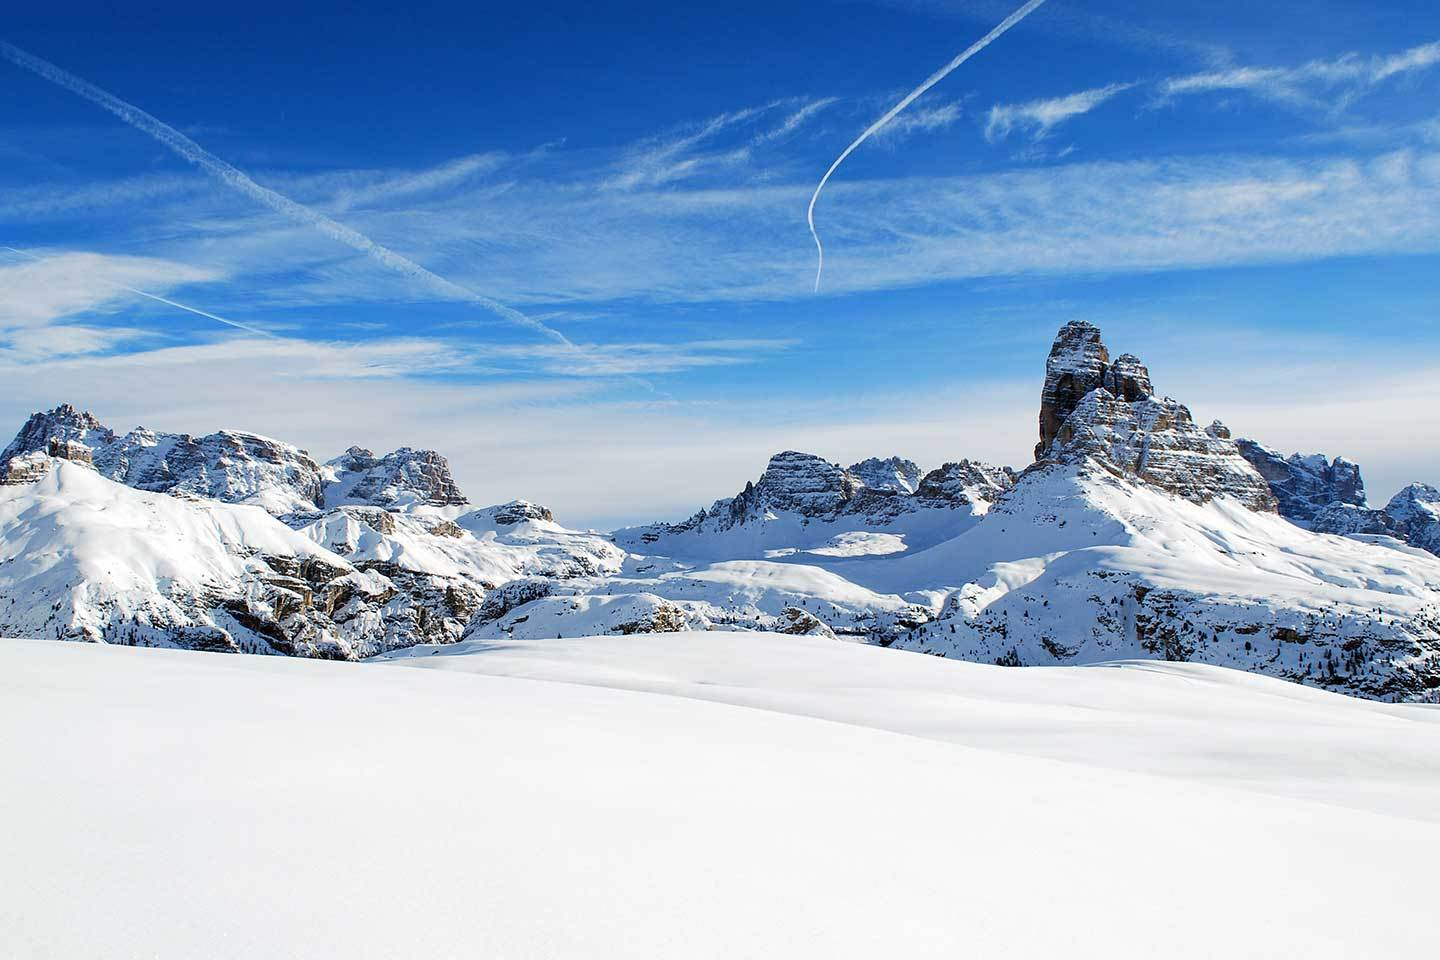 The Dolomites, UNESCO World Heritage Site